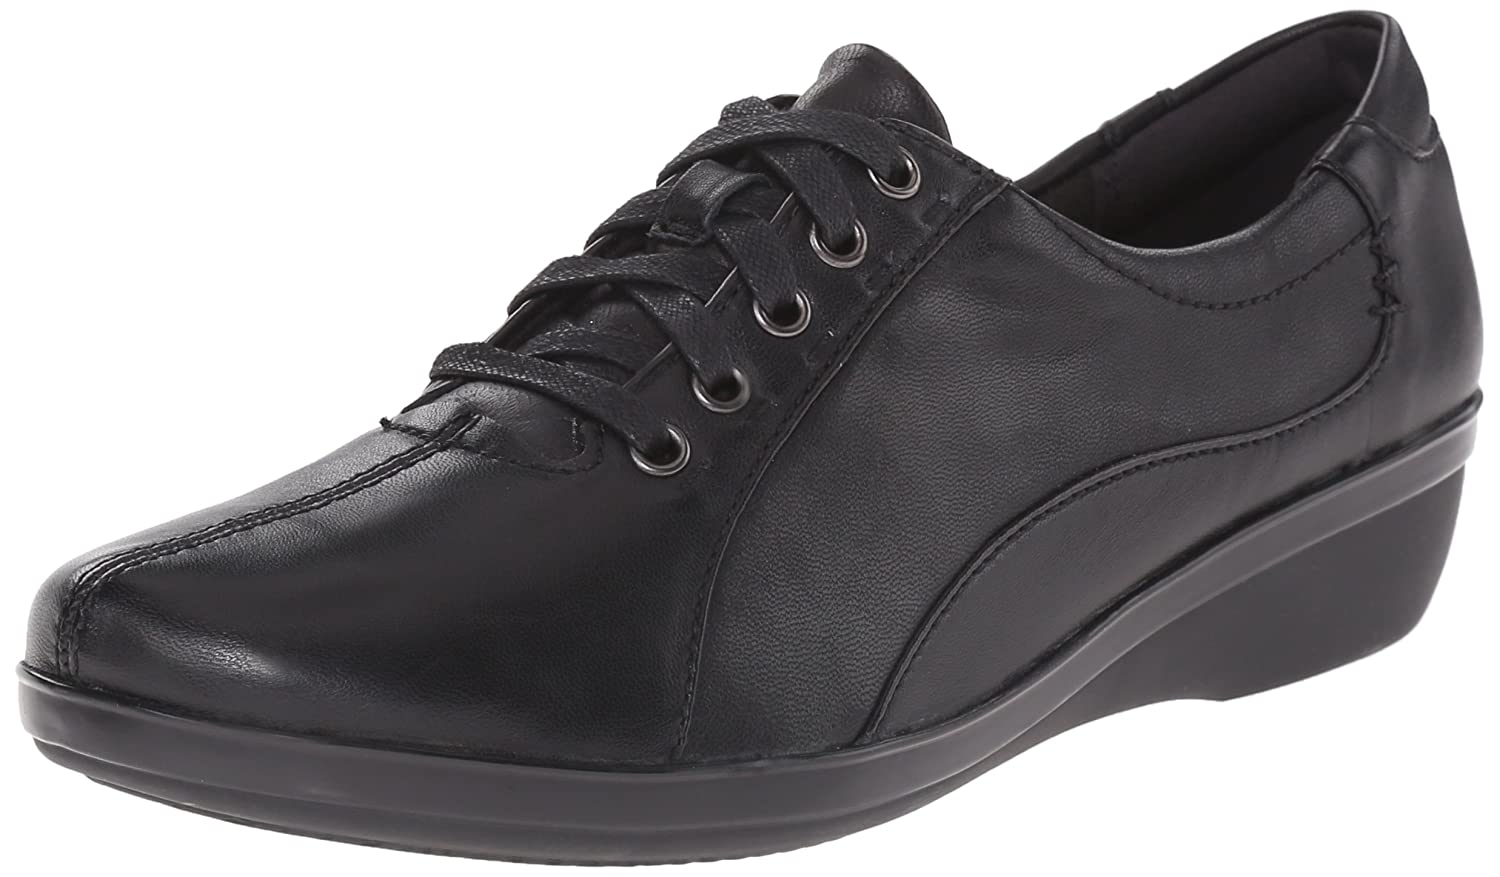 Clarks Women's Everlay Elma Oxford